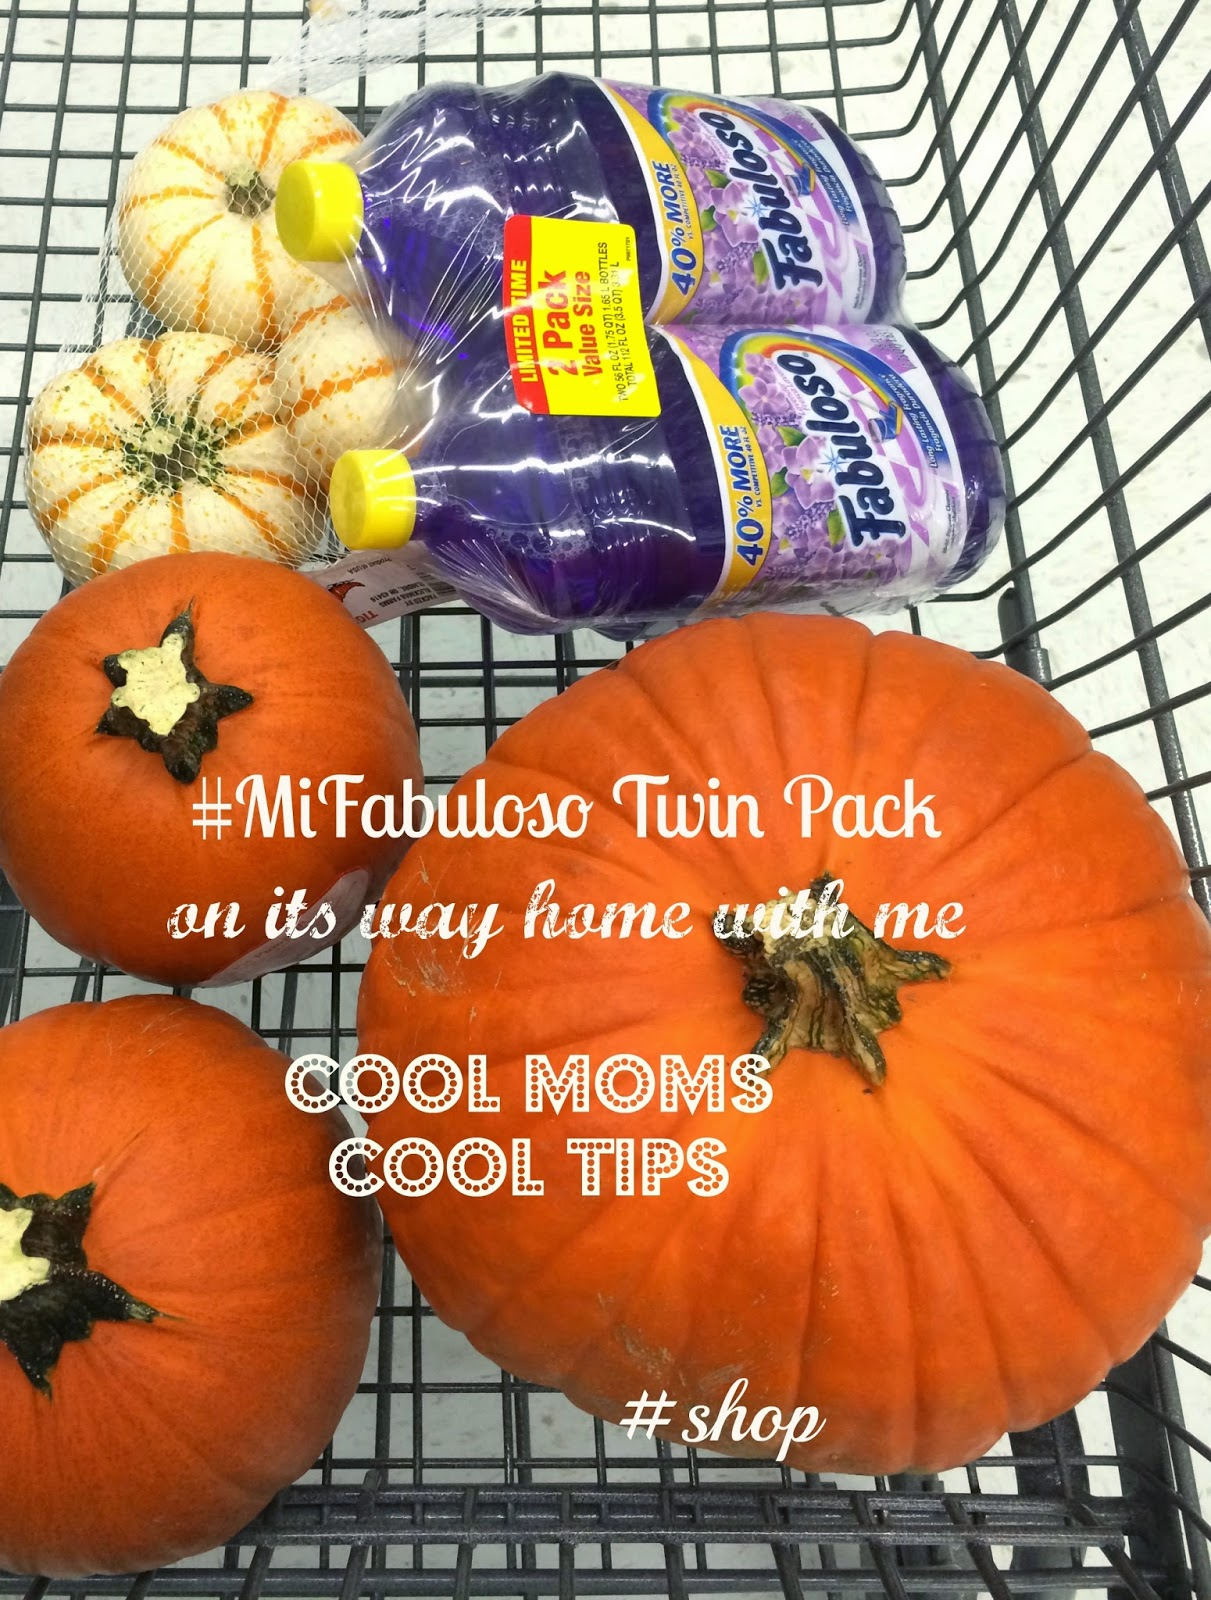 Cool Moms Cool Tips #MiFabuloso #shop #CollectiveBias Fabulos home with me